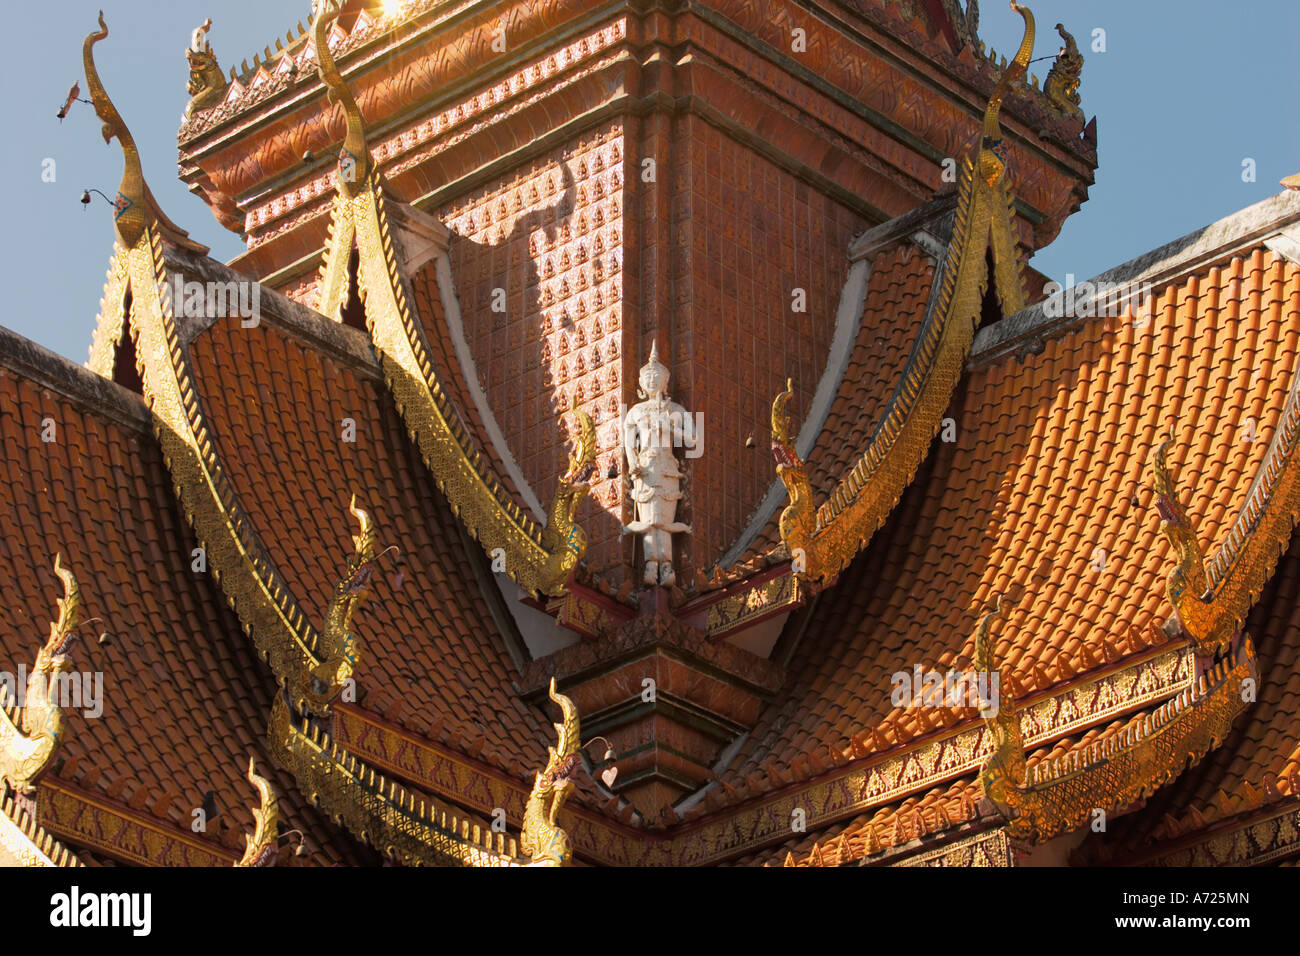 Part of the roof of Wat Bupparam. Chiang Mai, Thailand. Stock Photo